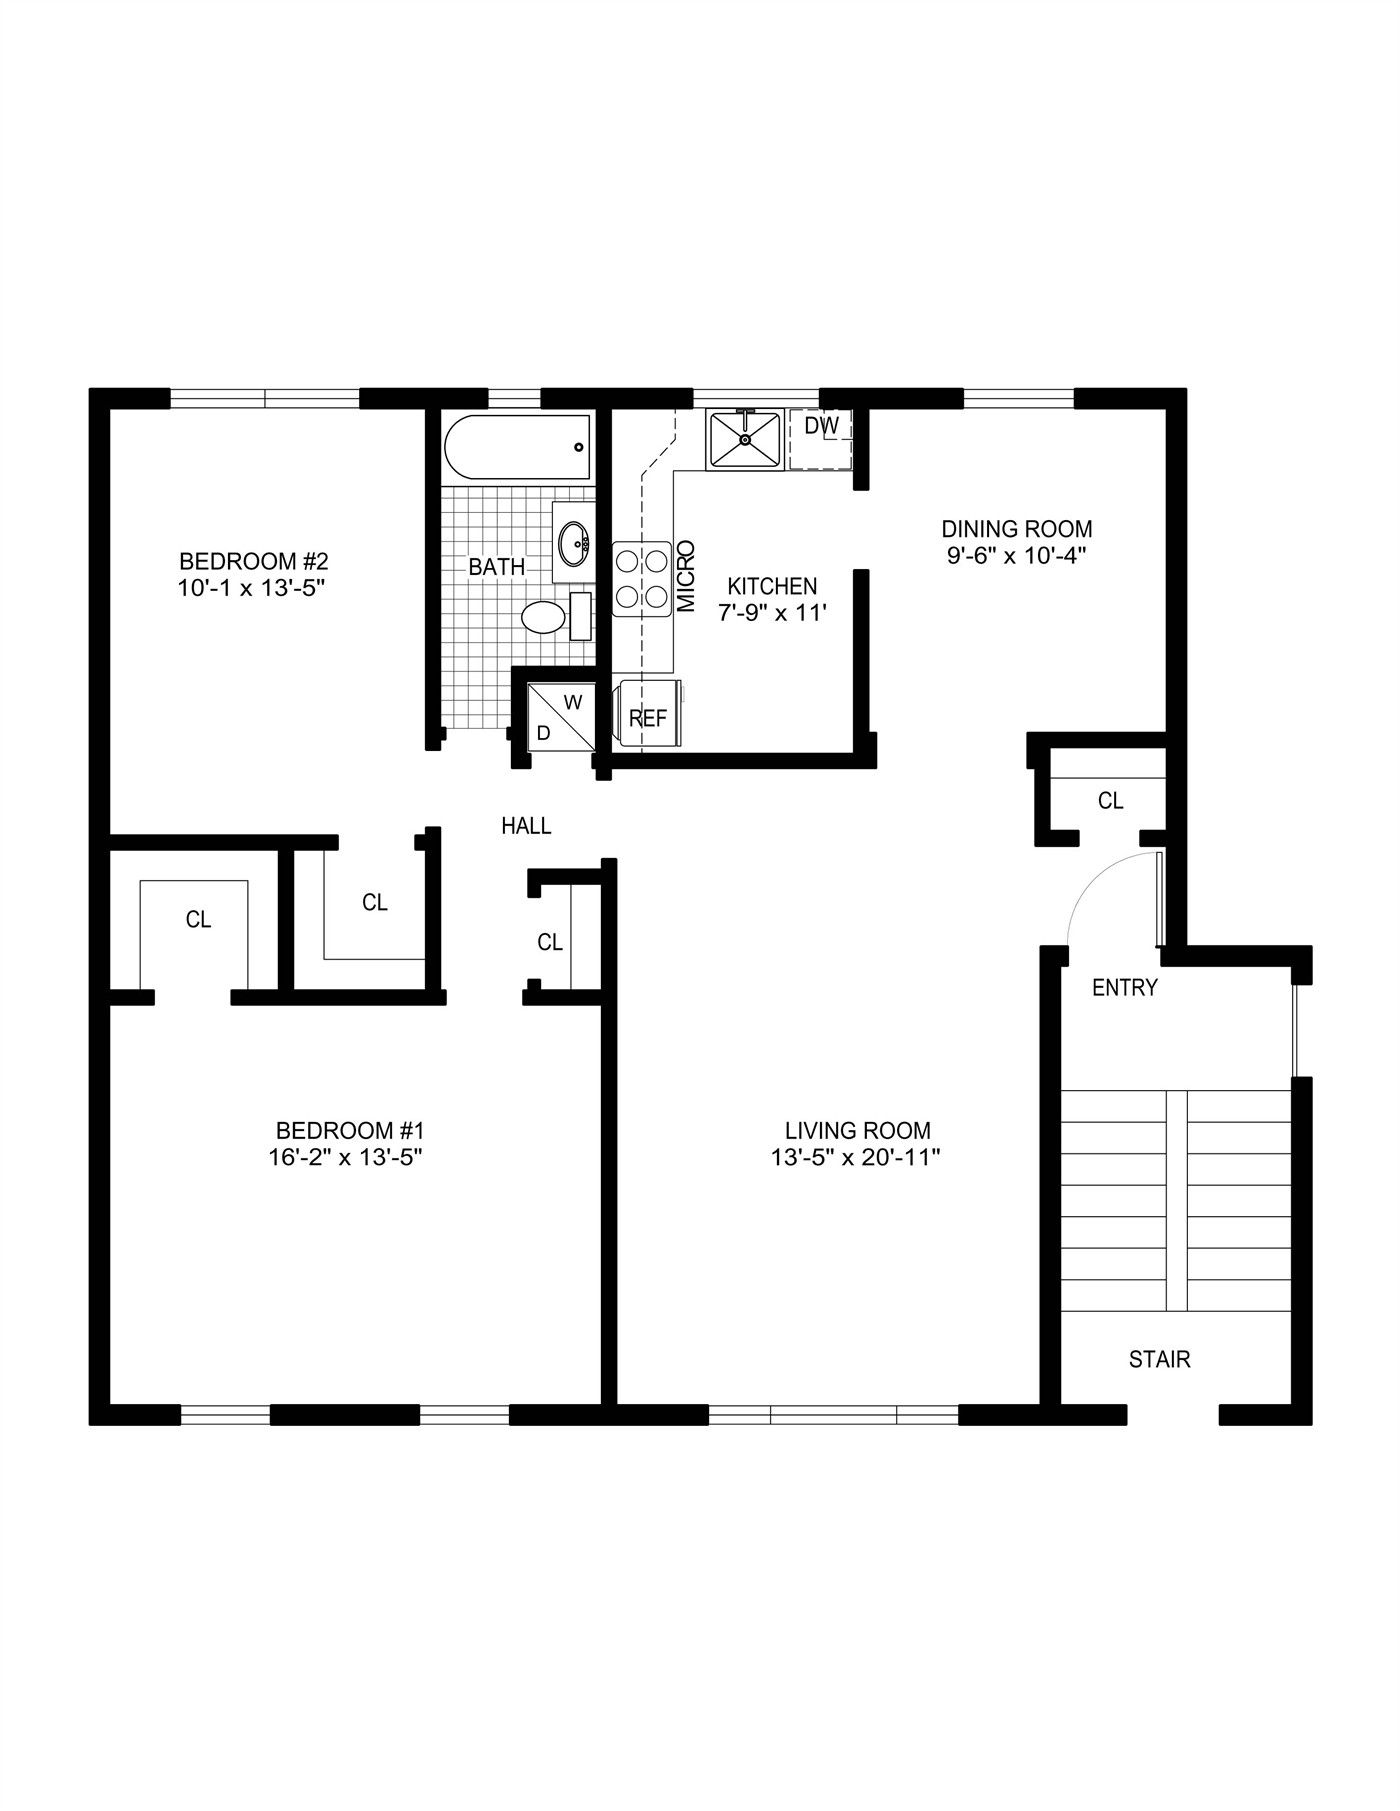 Small Easy To Build House Plans 2020 Desain Arsitektur Desain Arsitektur